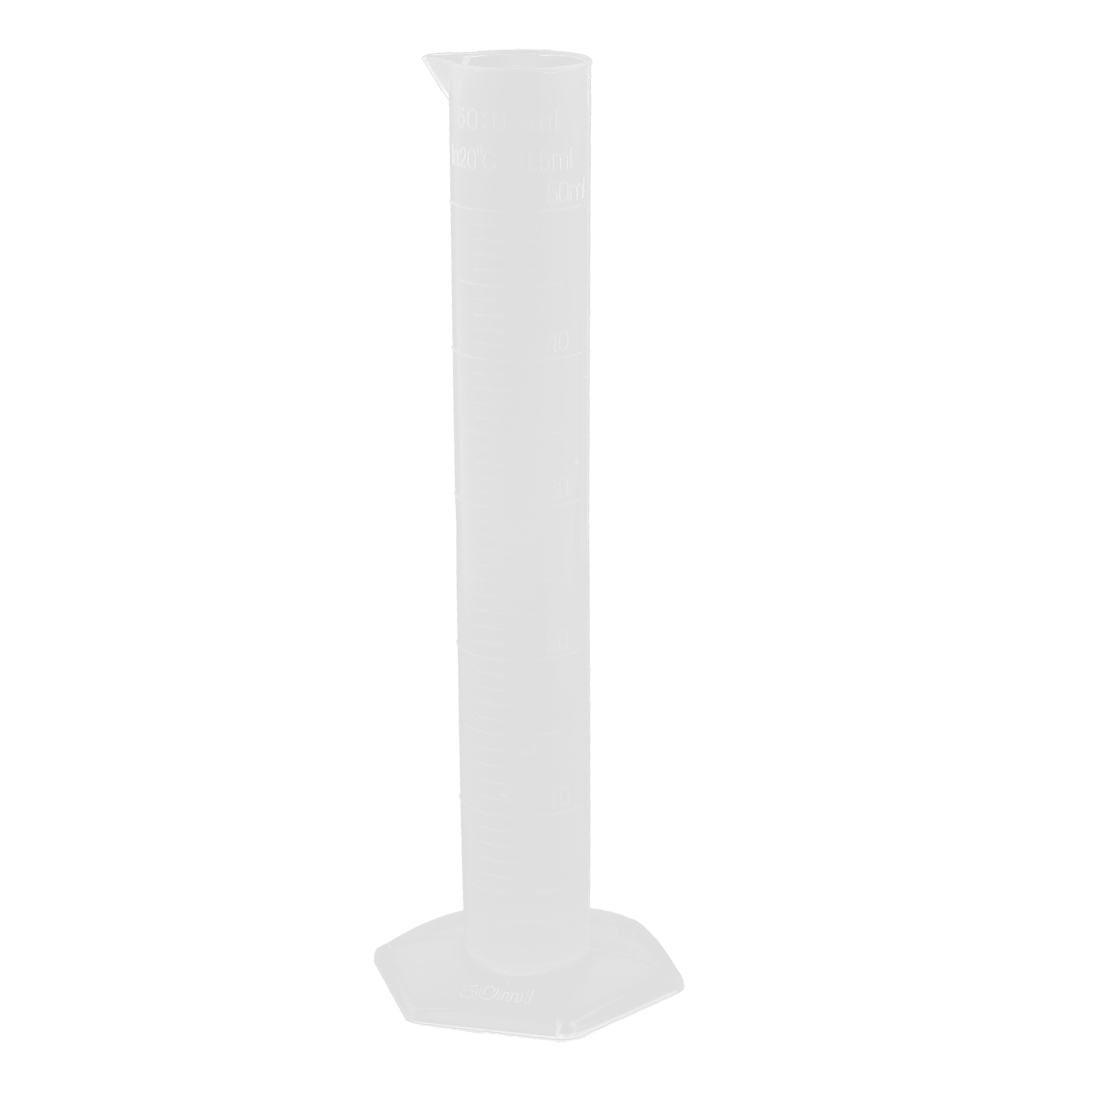 Laboratory Test 50ml Clear White Plastic Graduated Cylinder Measuring Beaker Cup